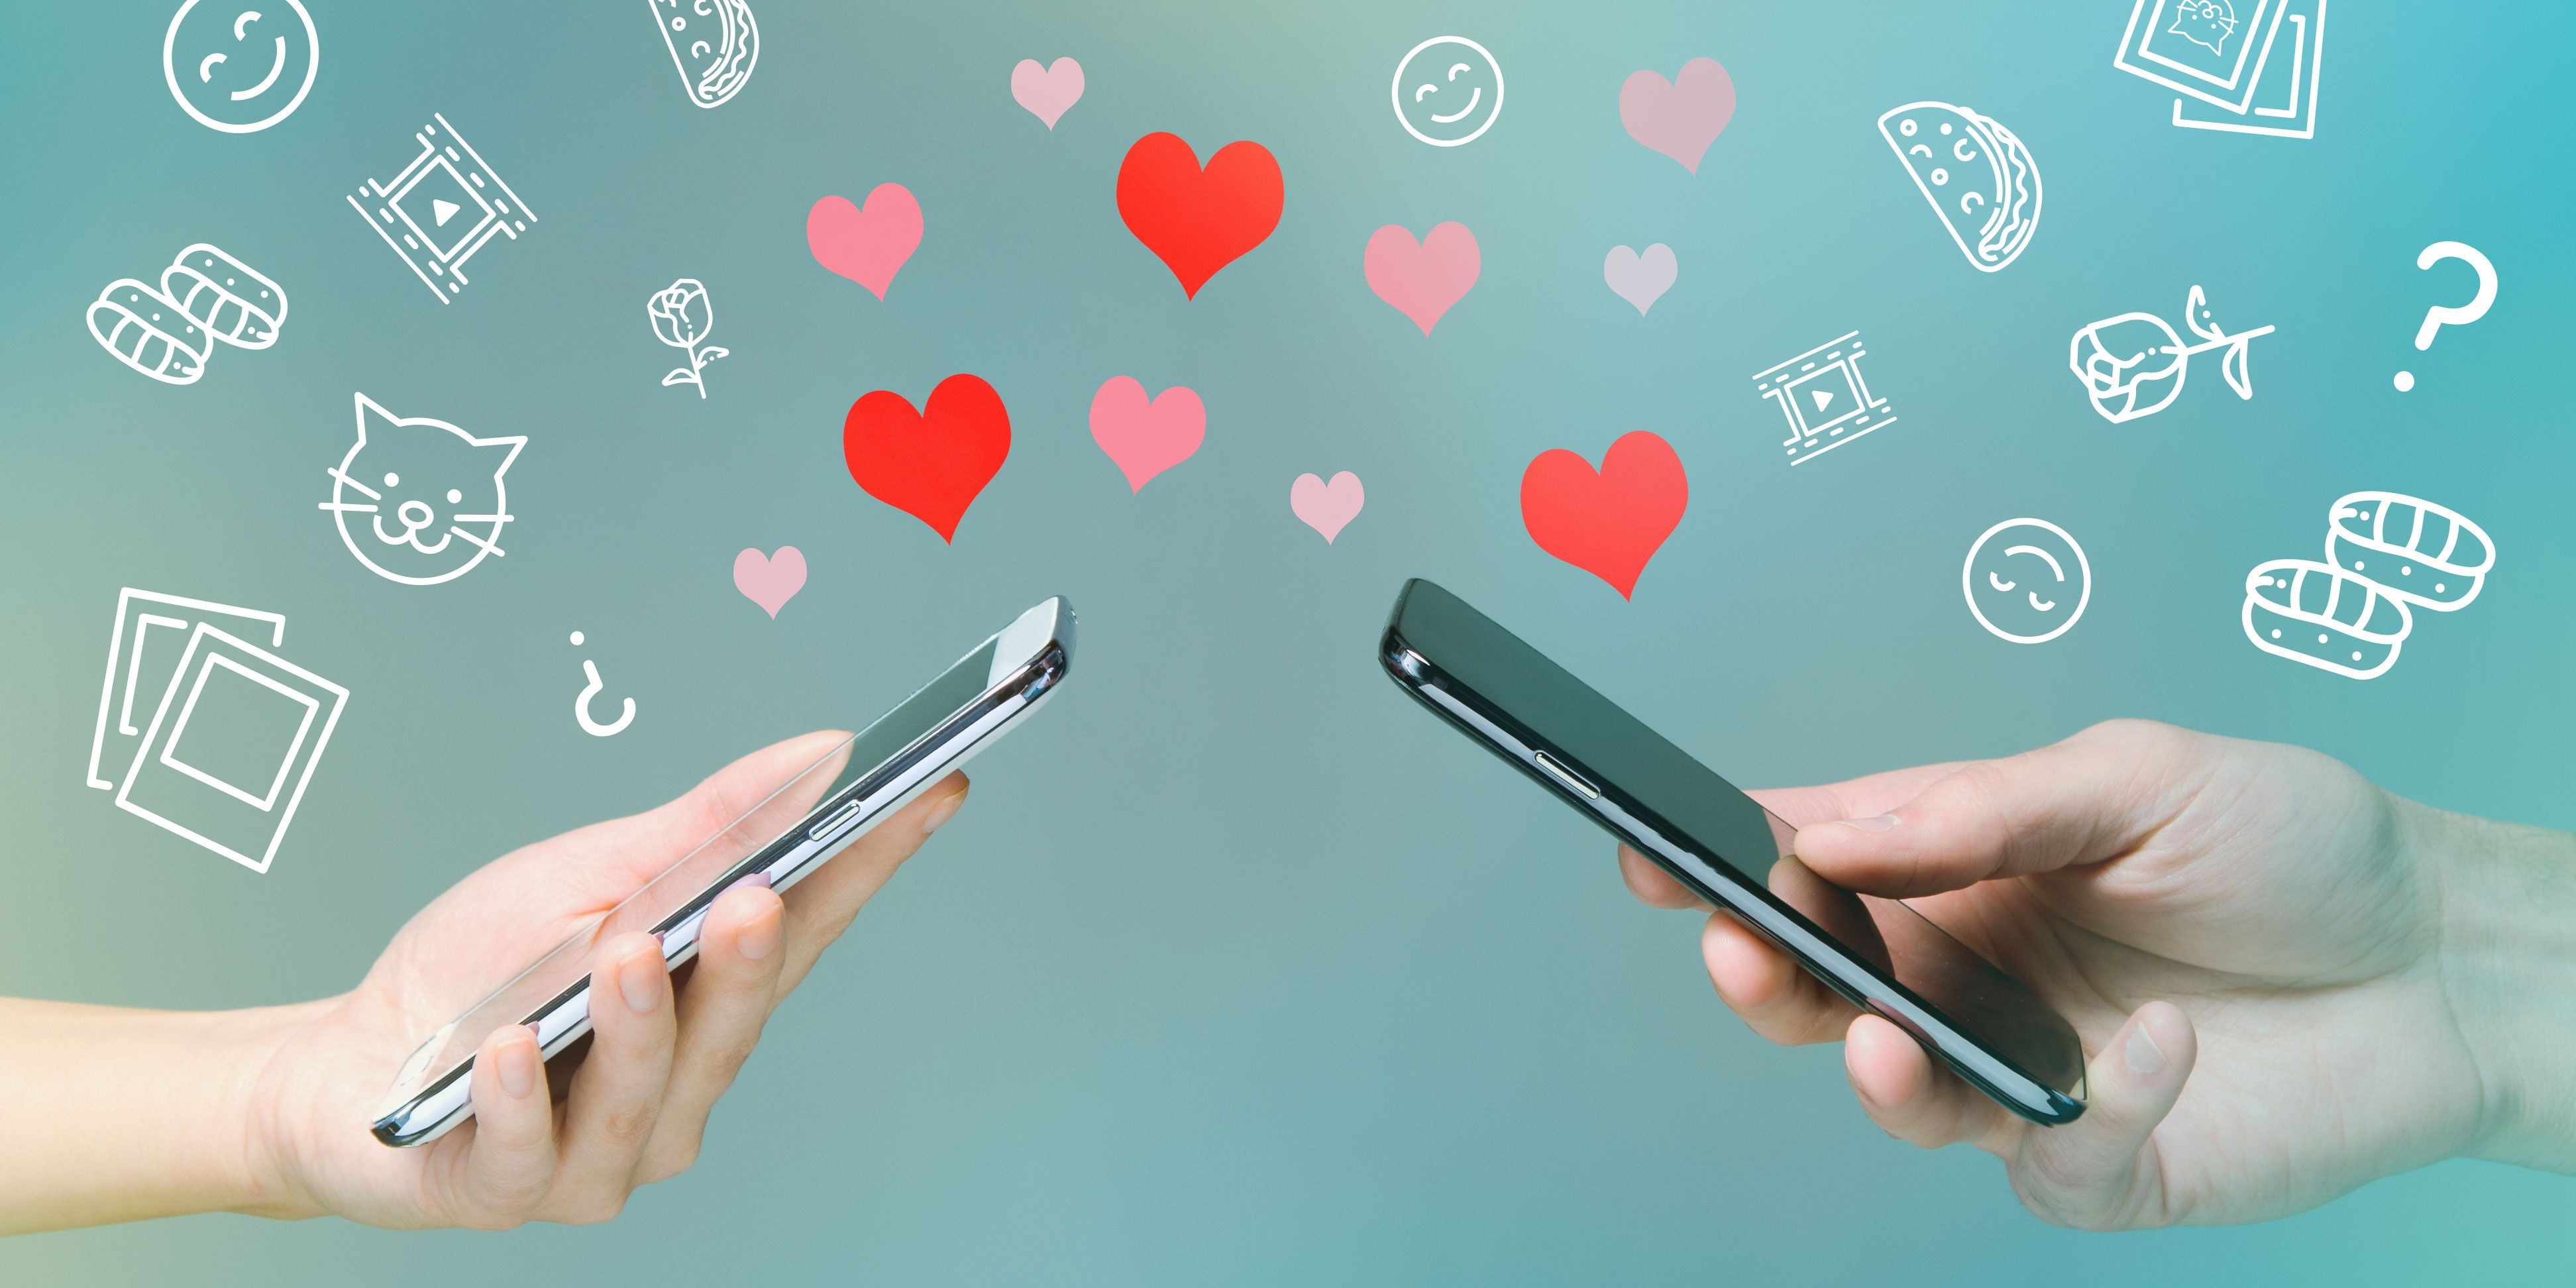 online dating keeps checking profile